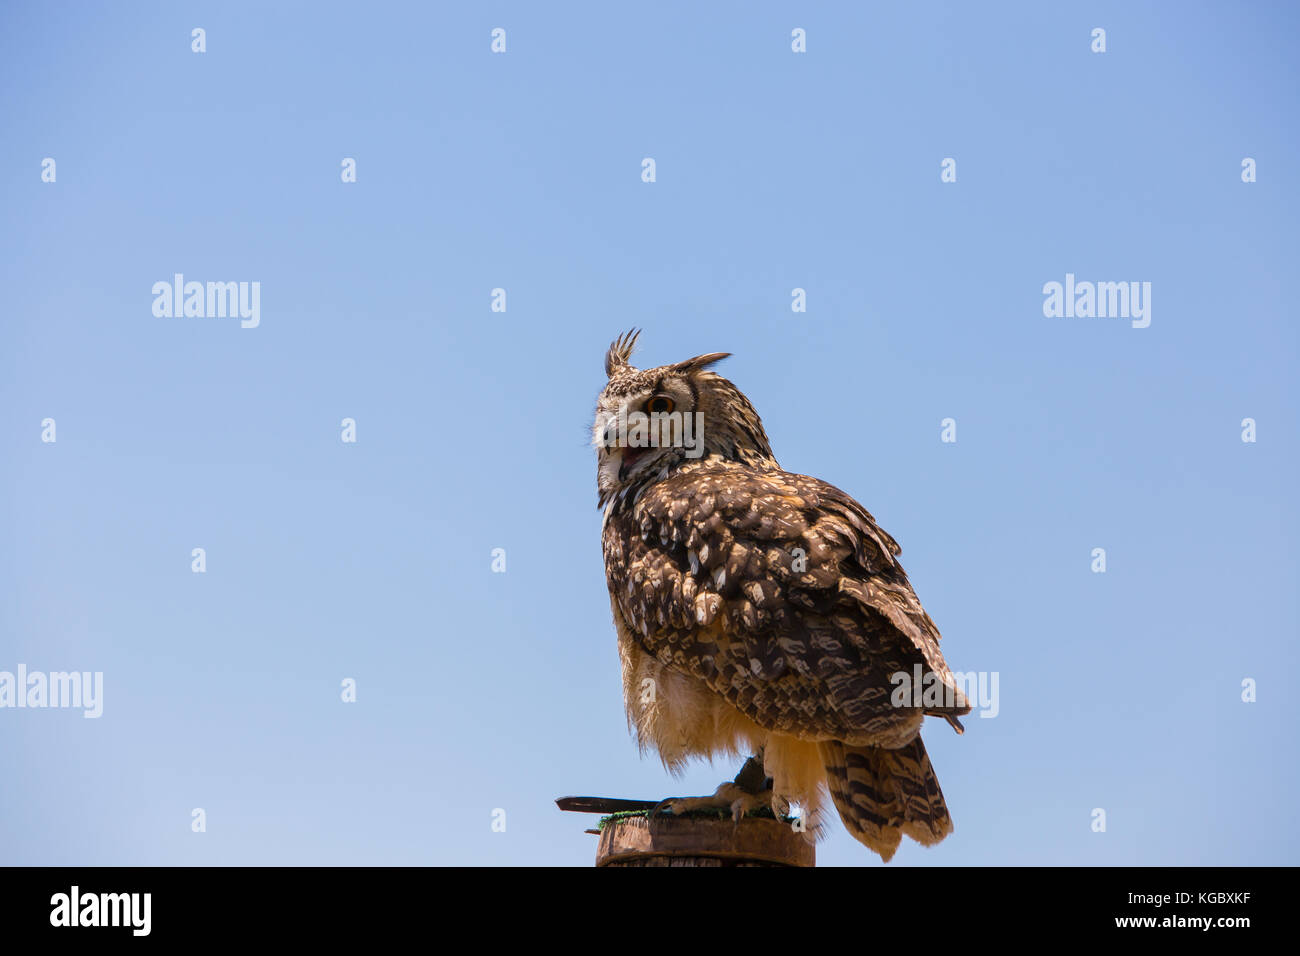 Bubo bubo - Real owl over a wooden pole with open beak. - Stock Image